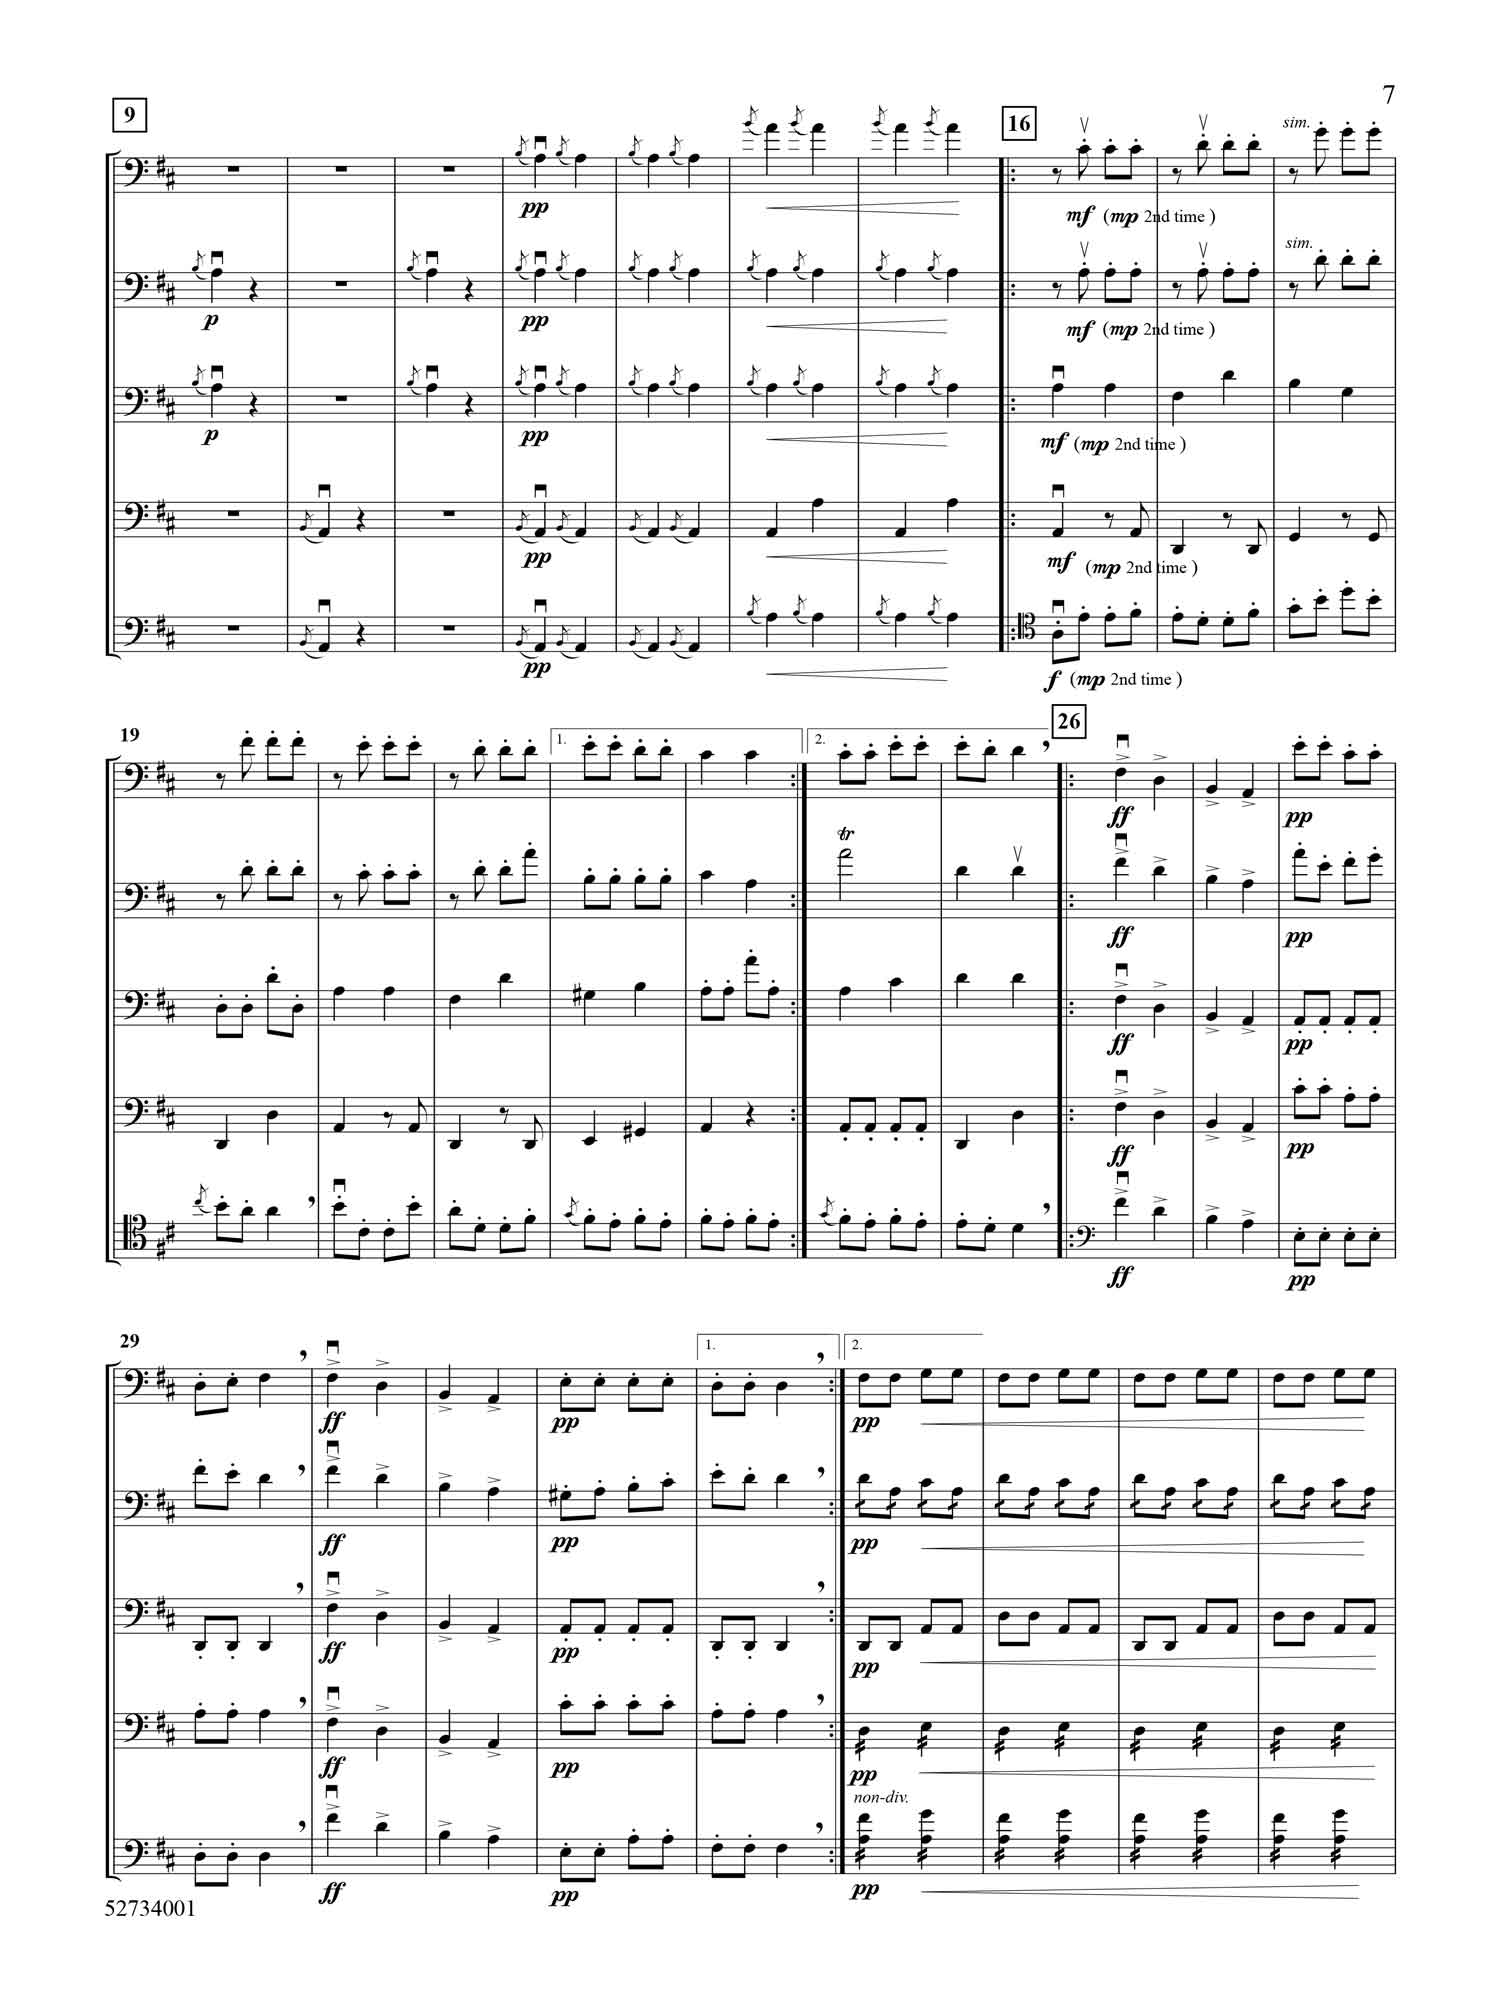 rondeau-des-metamorphoses-cancan-cello-quintet-score2.jpg